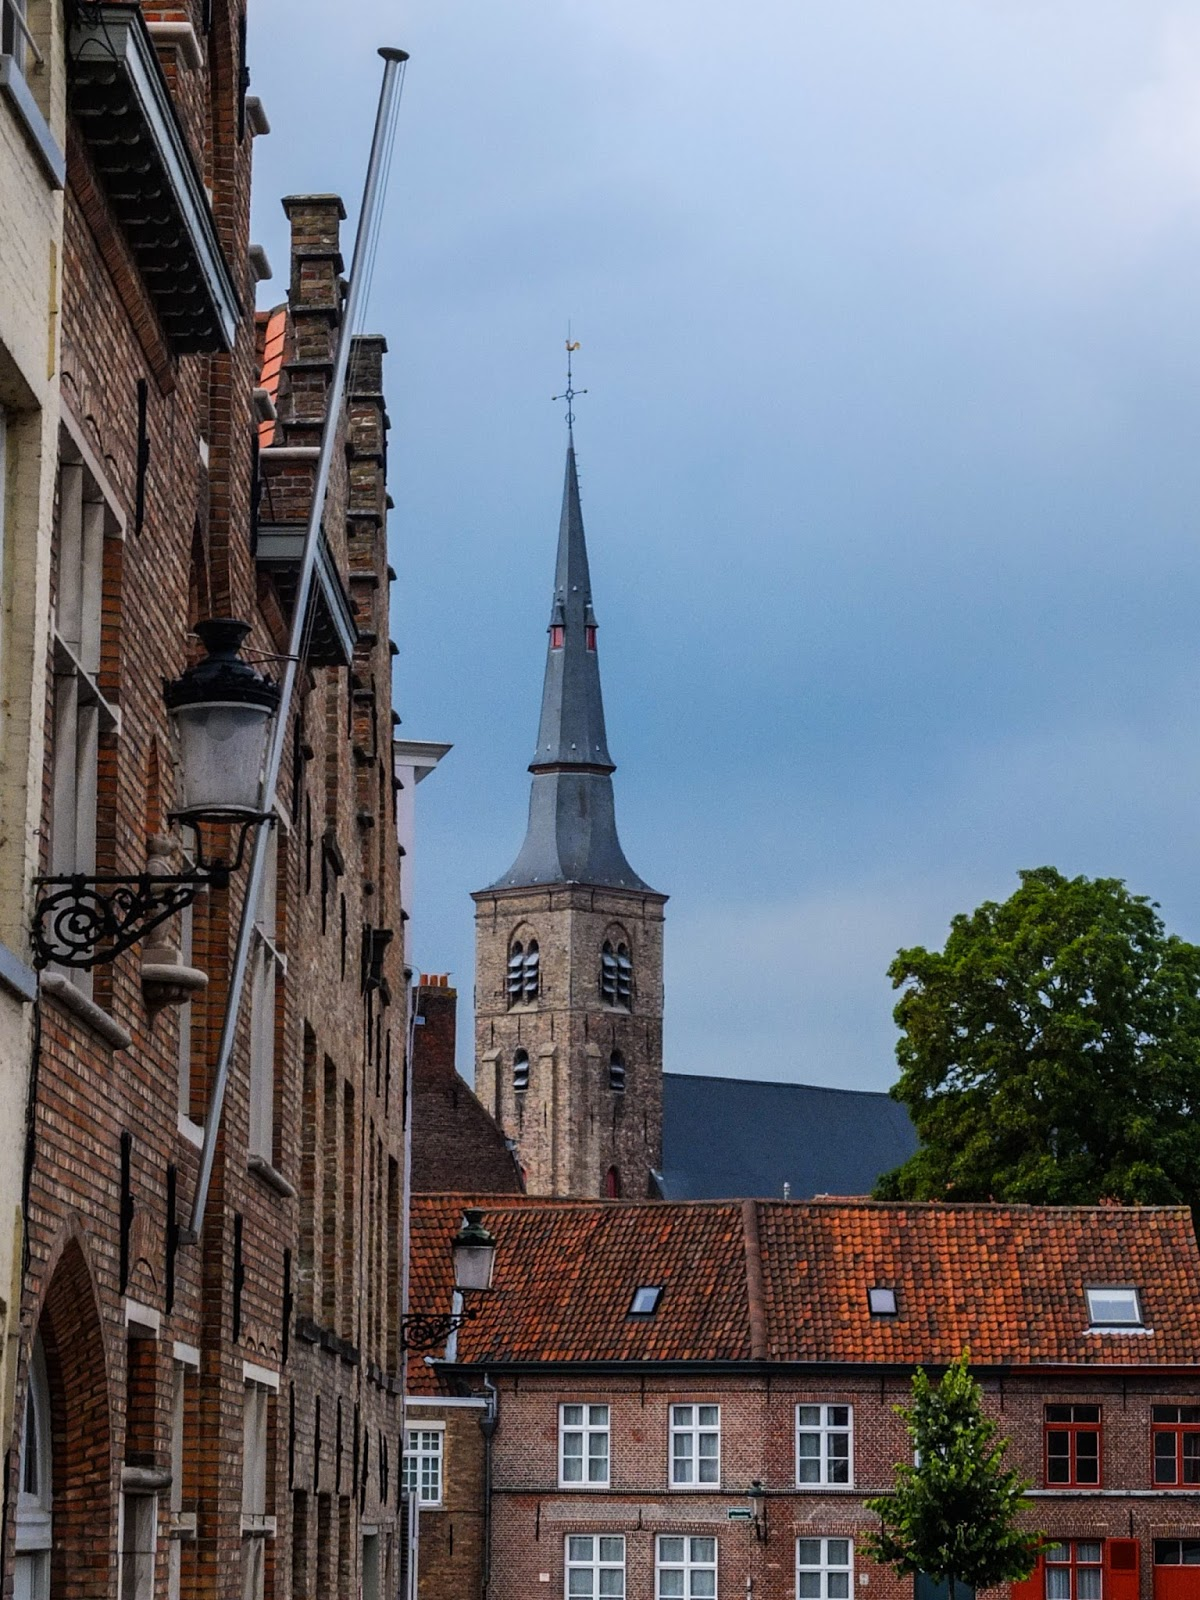 St. Anna's Church spire showing behind buildings in Bruges, Belgium.